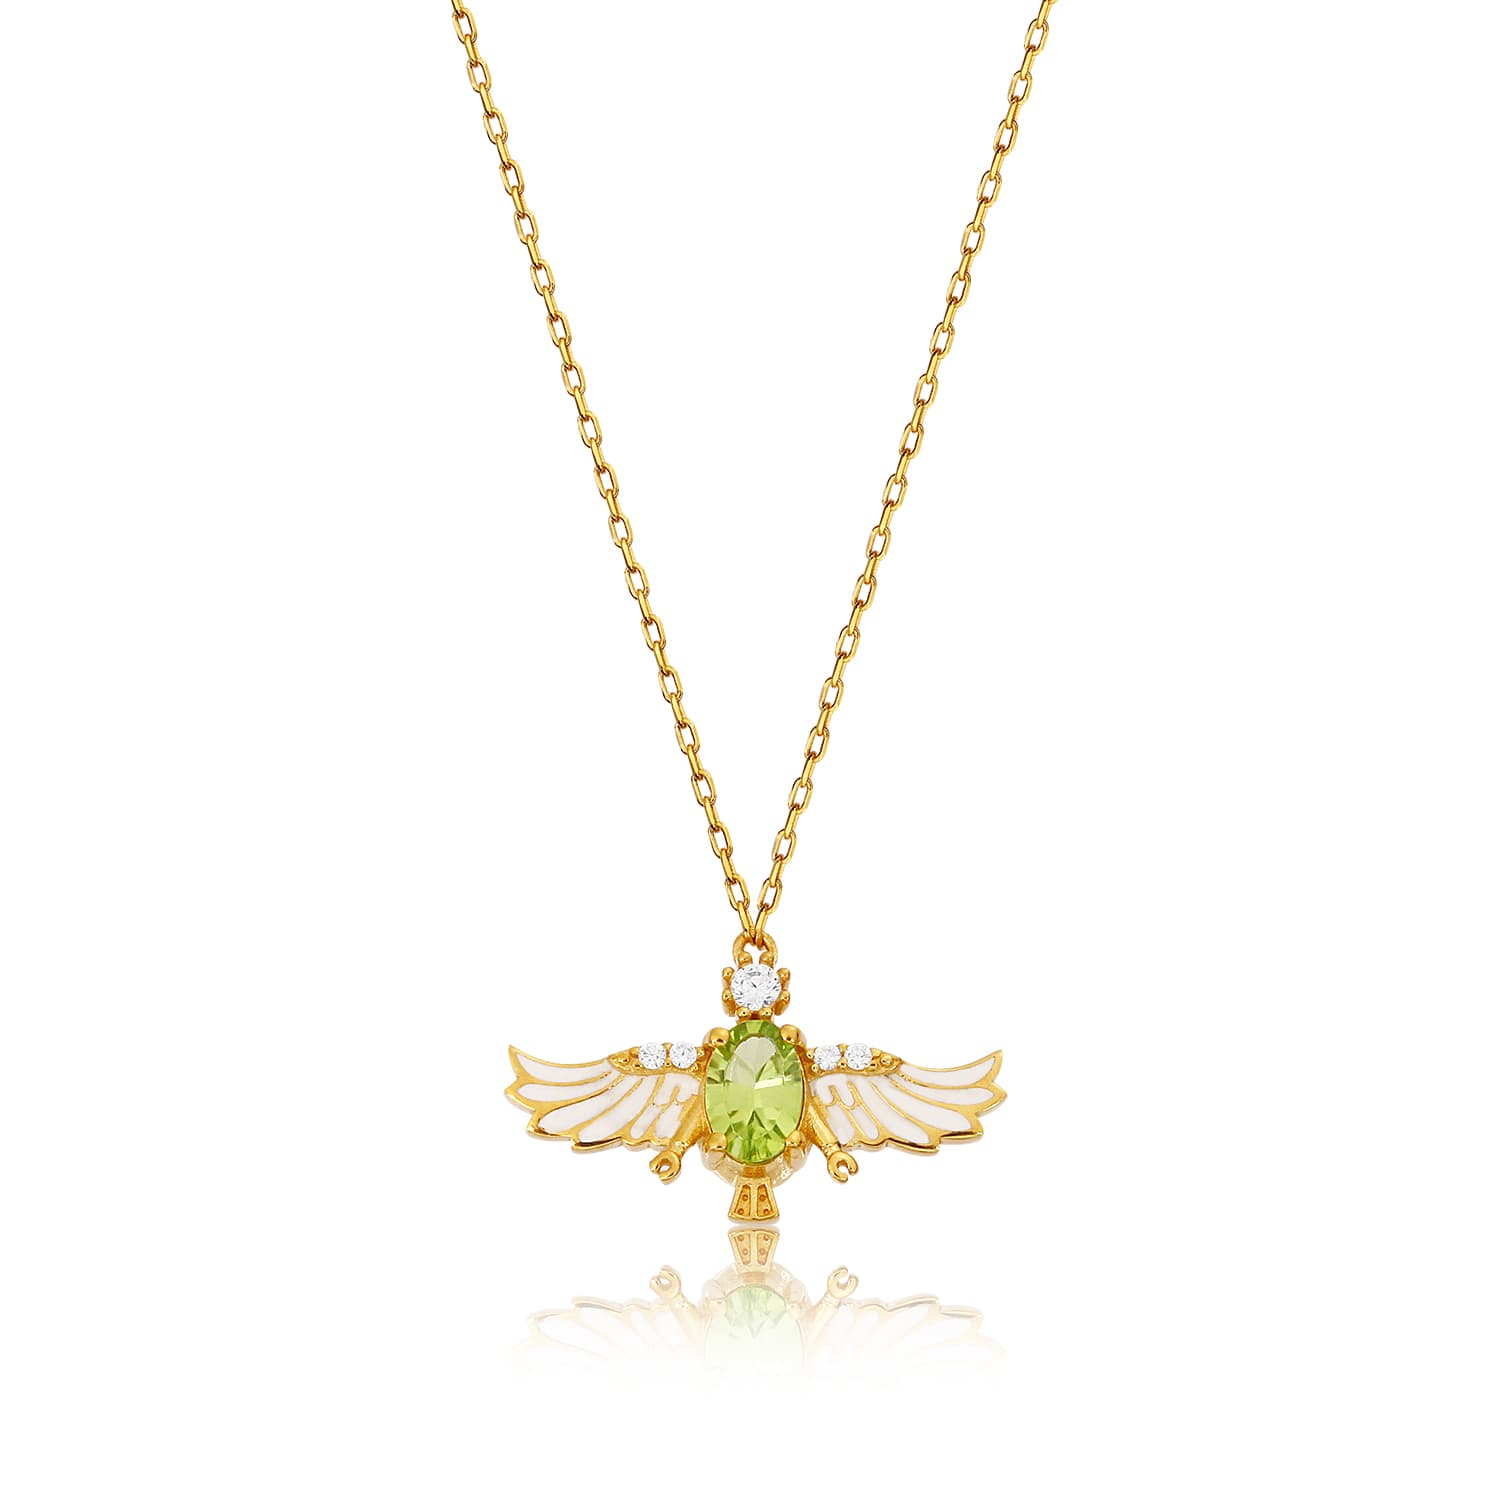 24K real gold plated natural stone necklace models on silver